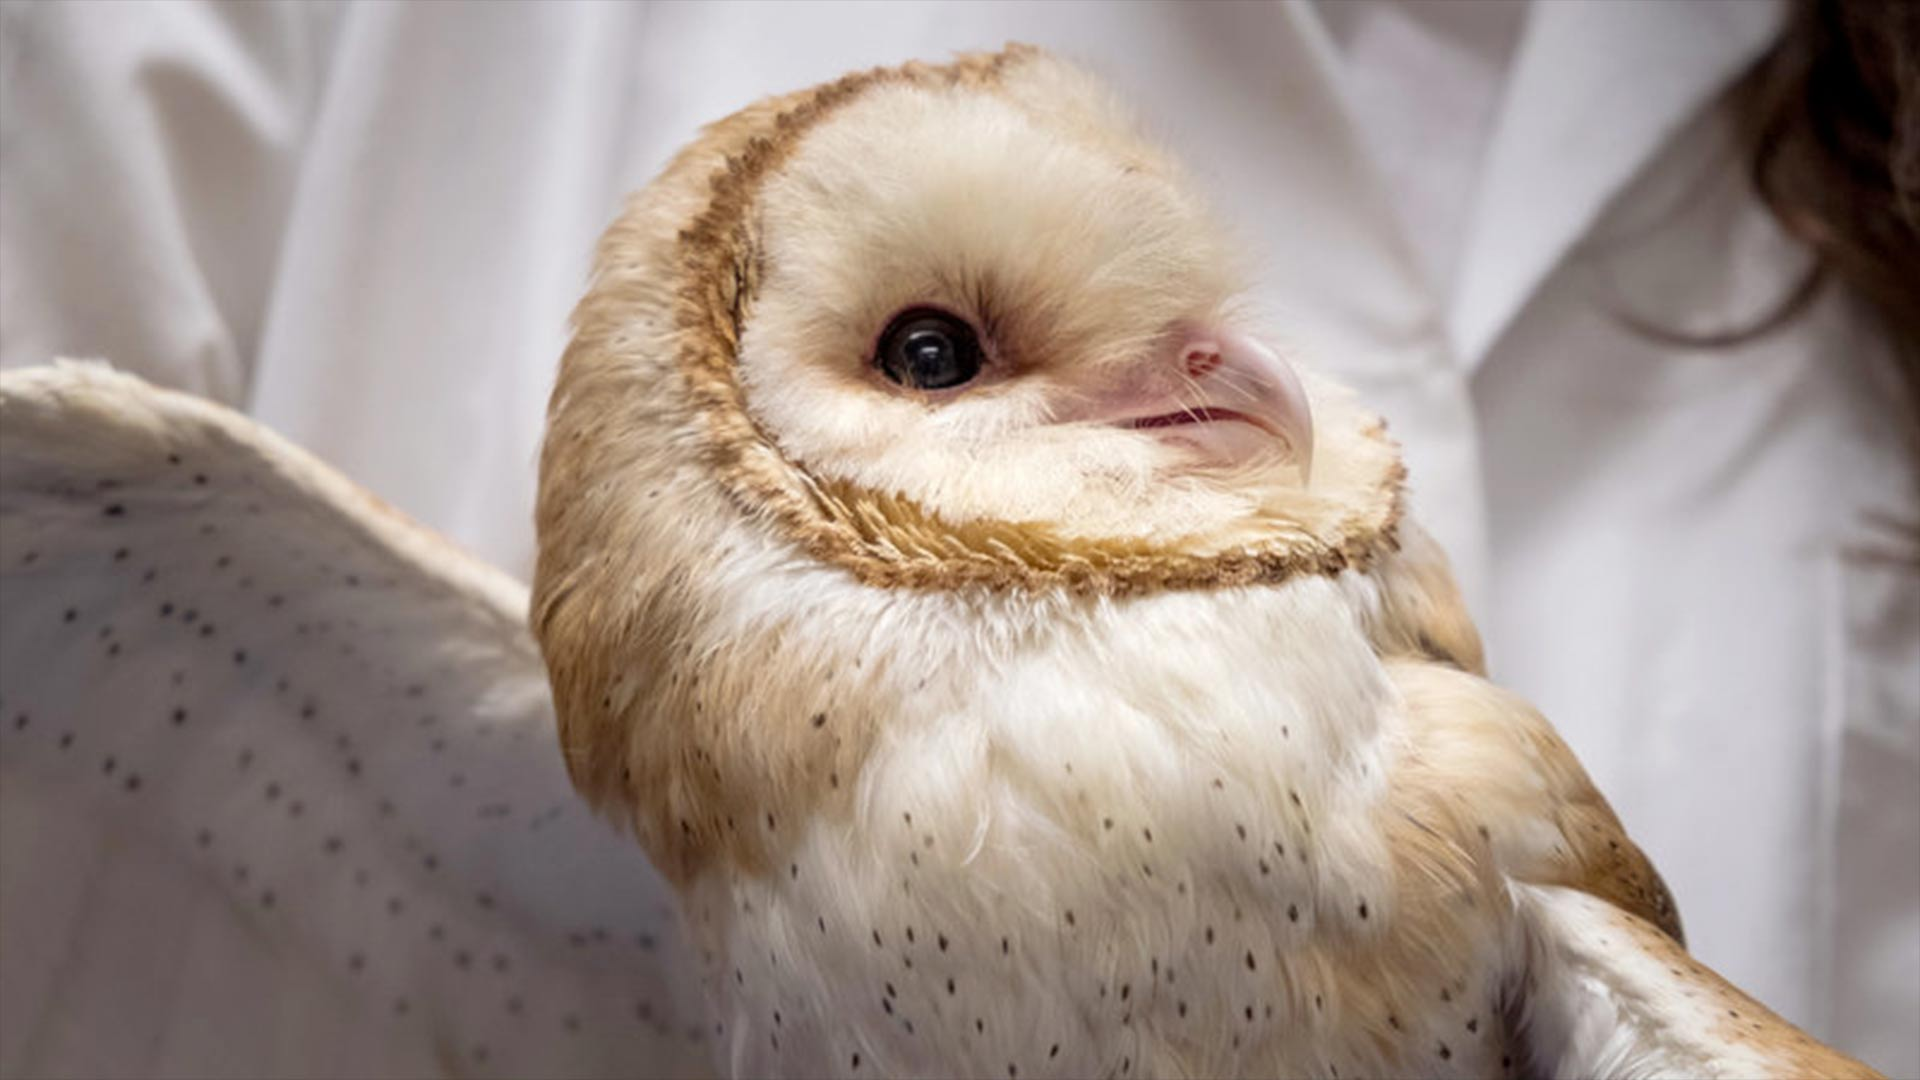 Scientists at Johns Hopkins University are studying barn owls to understand how the brain maintains focus.